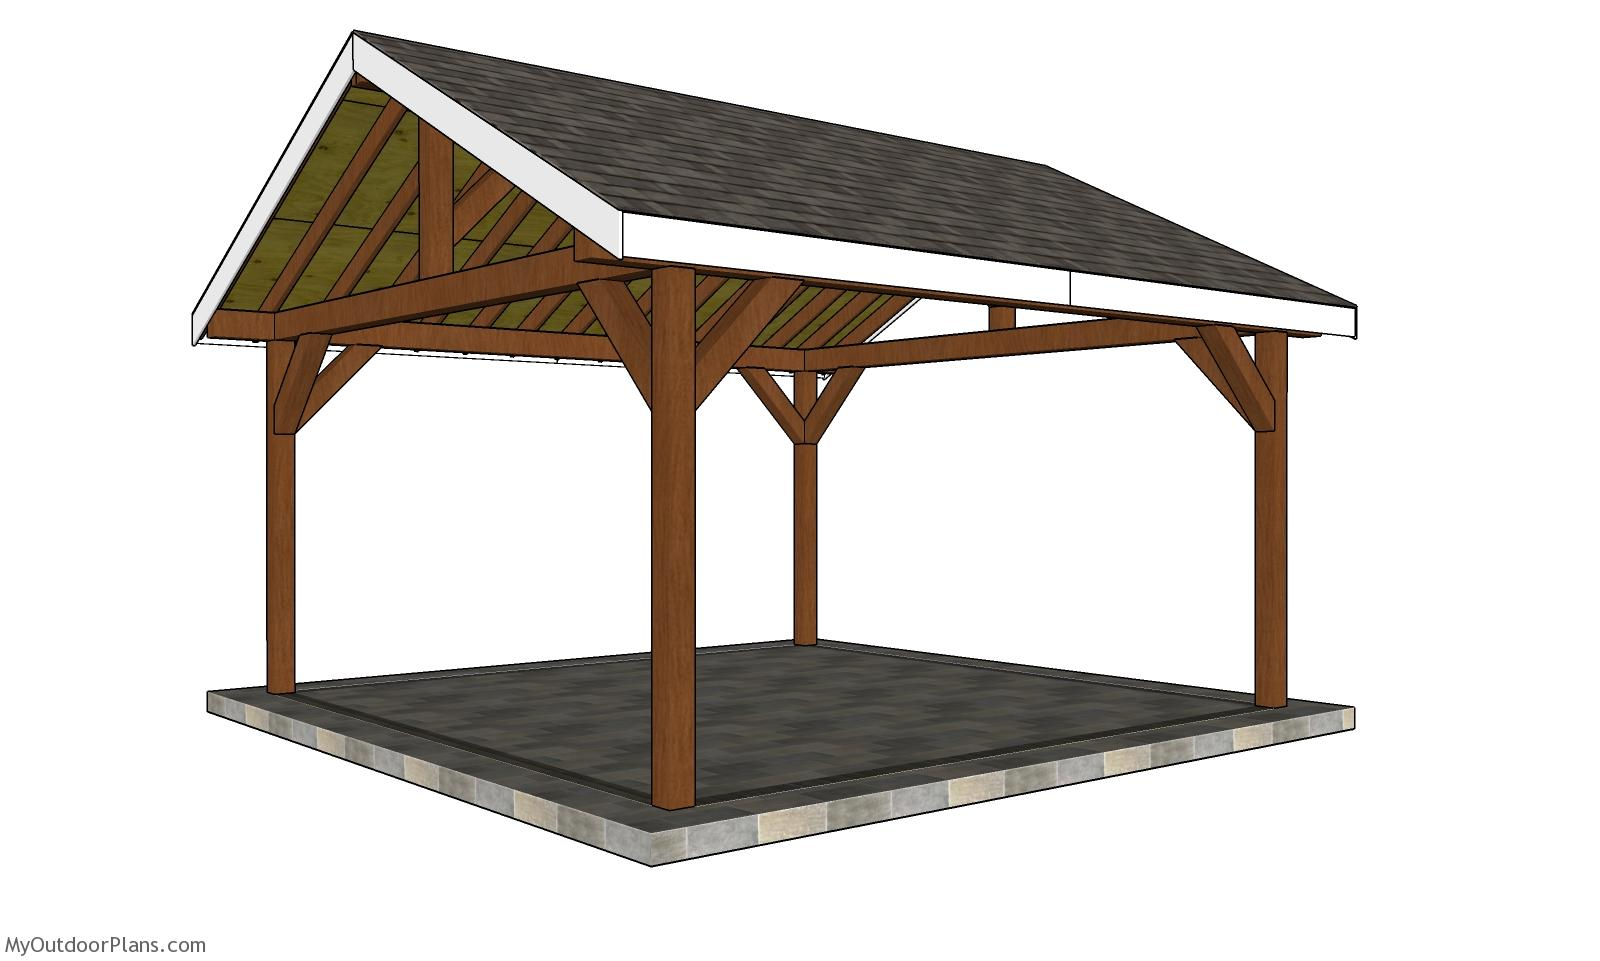 16x16 Gable Pavilion Plans